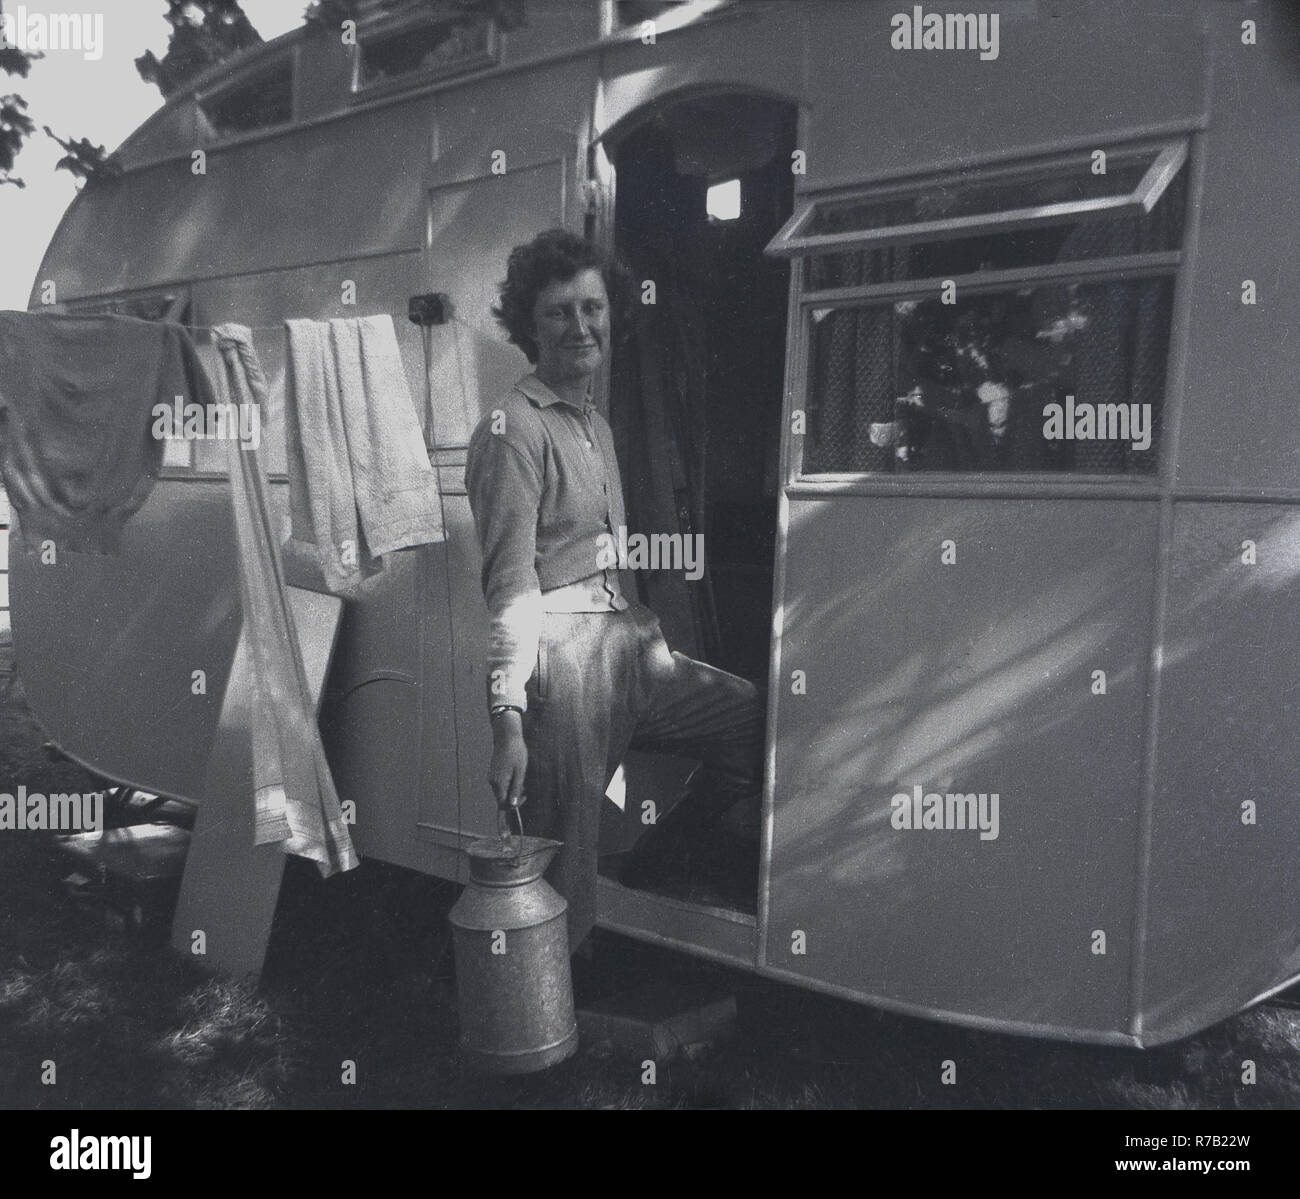 1940s, lady holding a metal milk churn at the door to her caravan with clothes hanging on a washing line, England, UK. Stock Photo